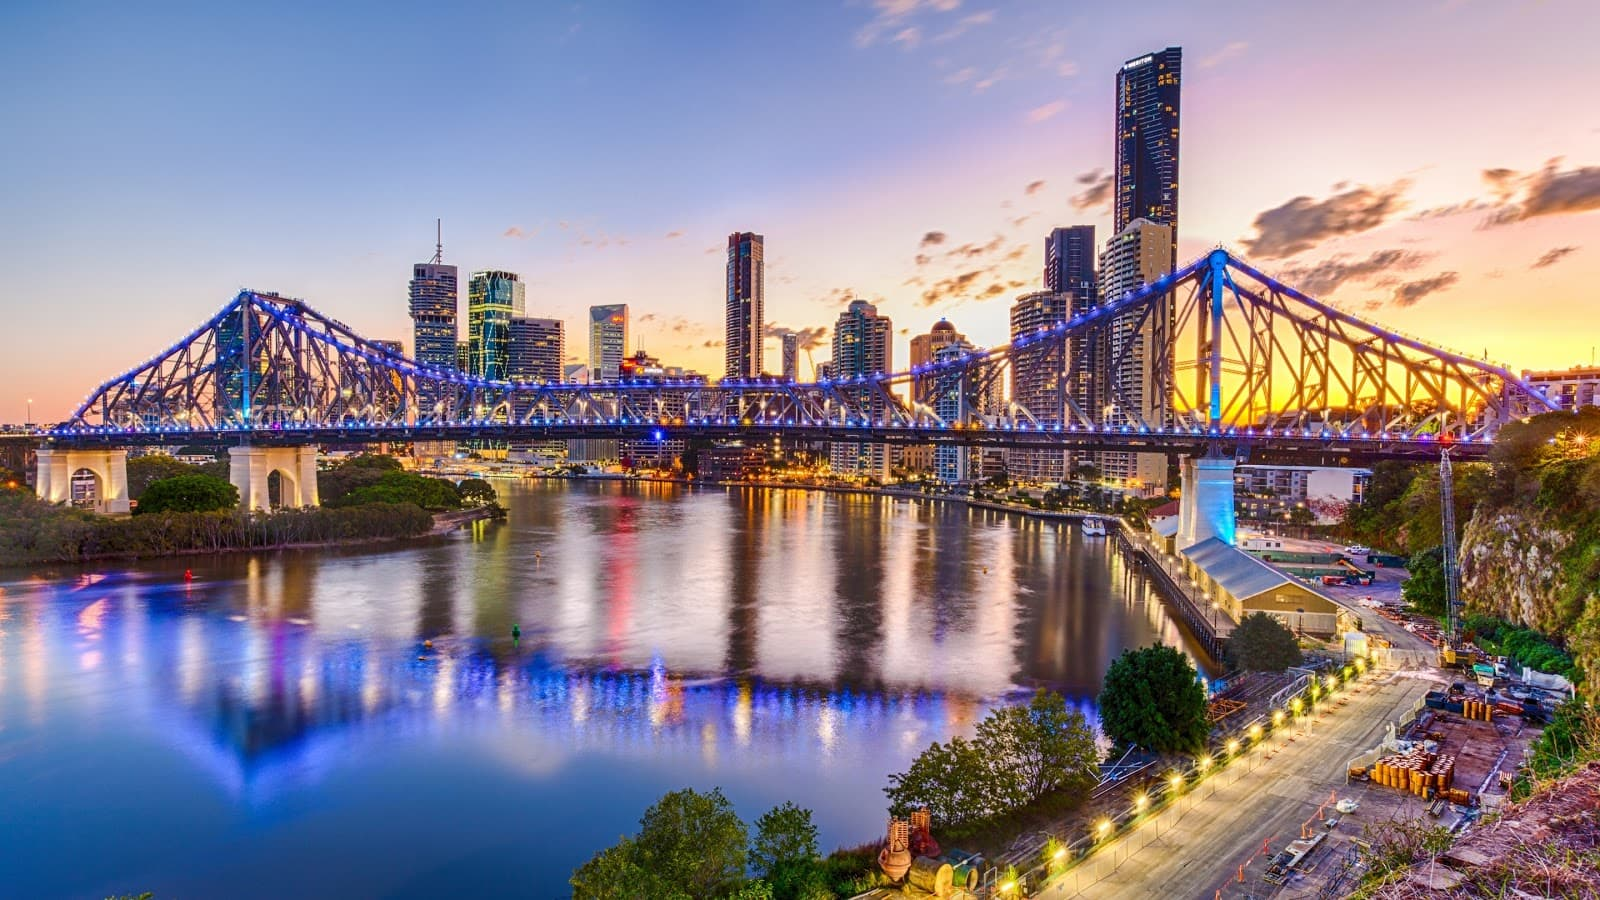 Think of the pros & cons when considering how to move to Australia